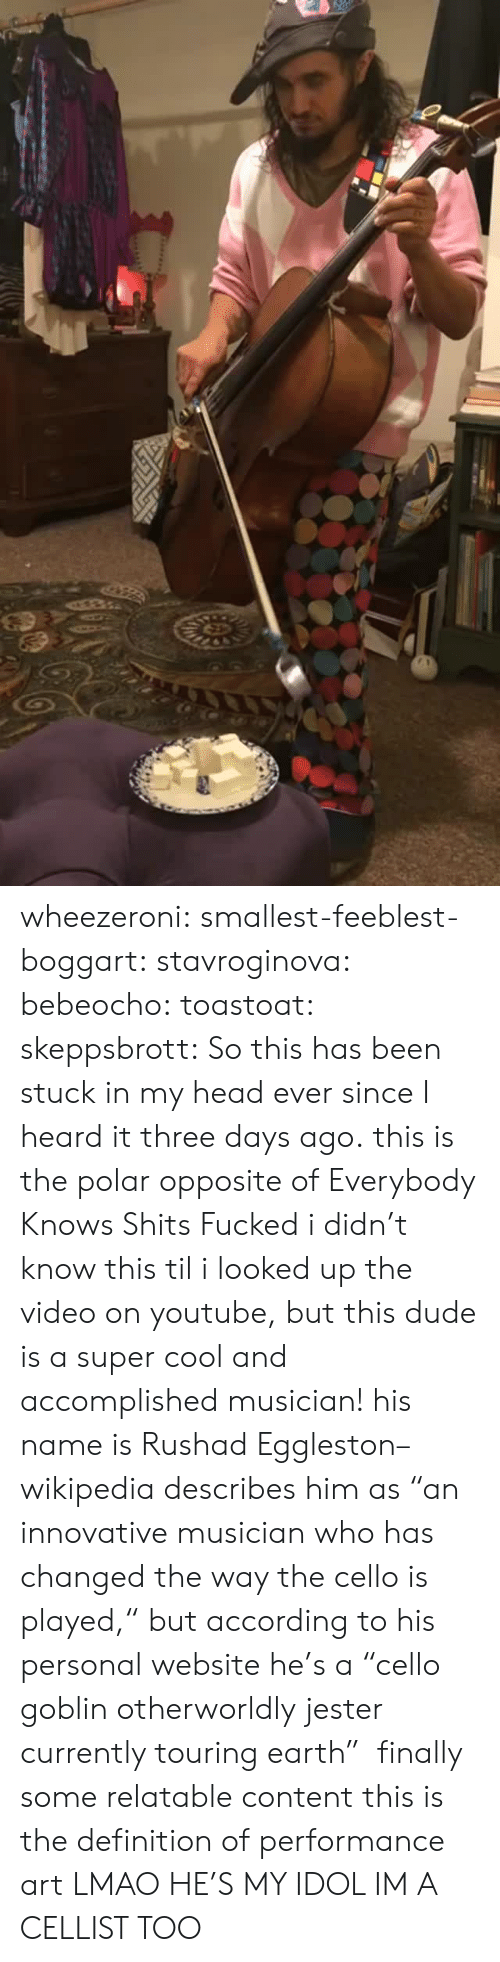 "Dude, Head, and Lmao: wheezeroni:  smallest-feeblest-boggart:  stavroginova:  bebeocho:  toastoat:  skeppsbrott: So this has been stuck in my head ever since I heard it three days ago. this is the polar opposite of Everybody Knows Shits Fucked  i didn't know this til i looked up the video on youtube, but this dude is a super cool and accomplished musician! his name is Rushad Eggleston–wikipedia describes him as ""an innovative musician who has changed the way the cello is played,"" but according to his personal website he's a ""cello goblin  otherworldly jester currently touring earth""    finally some relatable content  this is the definition of performance art  LMAO HE'S MY IDOL IM A CELLIST TOO"